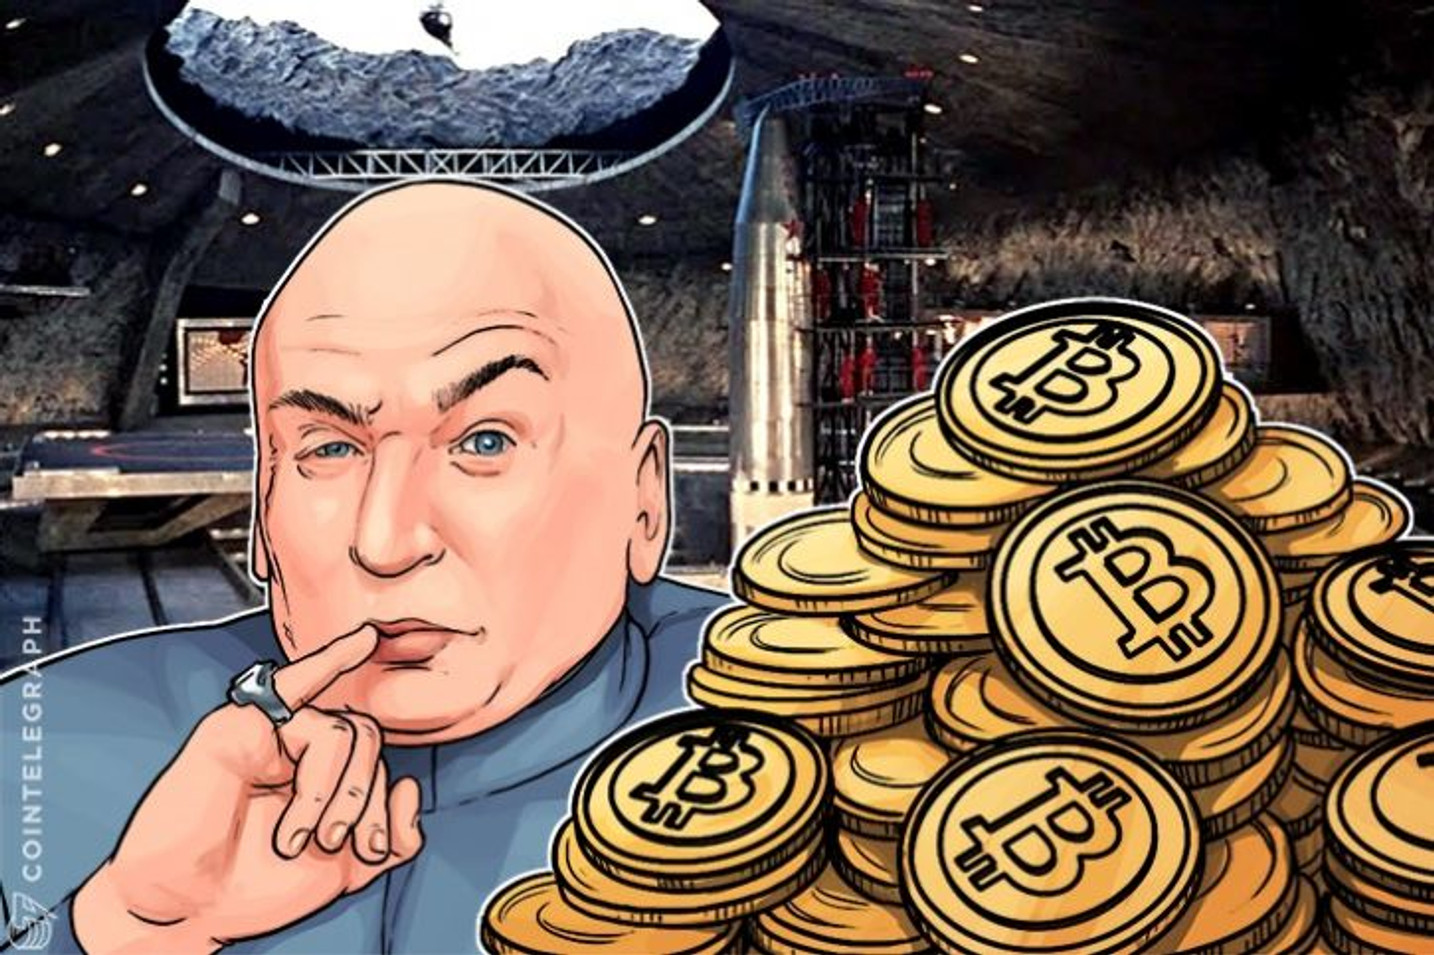 Teenager Uses Bitcoin to Buy Anonymity for Bomb Threats, Faces US Extradition